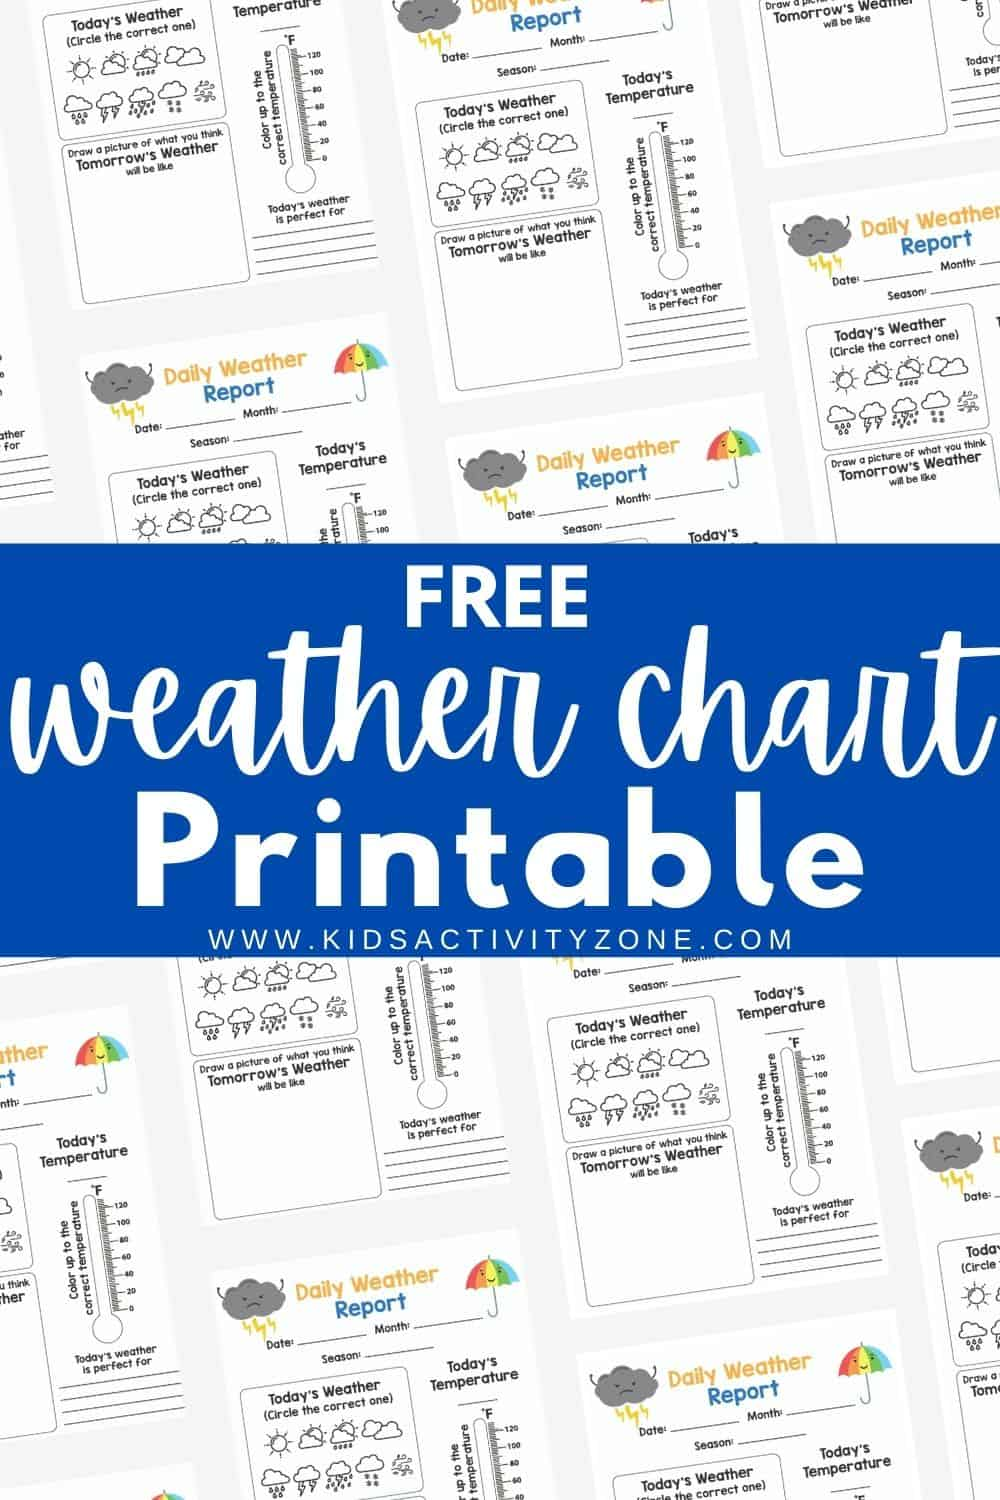 Free Weather Journal Printable for elementary aged children included sheets for daily and weekly forecasting. It's the perfect additional to any studies on the weather. You can track today's weather, predict tomorrow's weather and more with these free printable download.